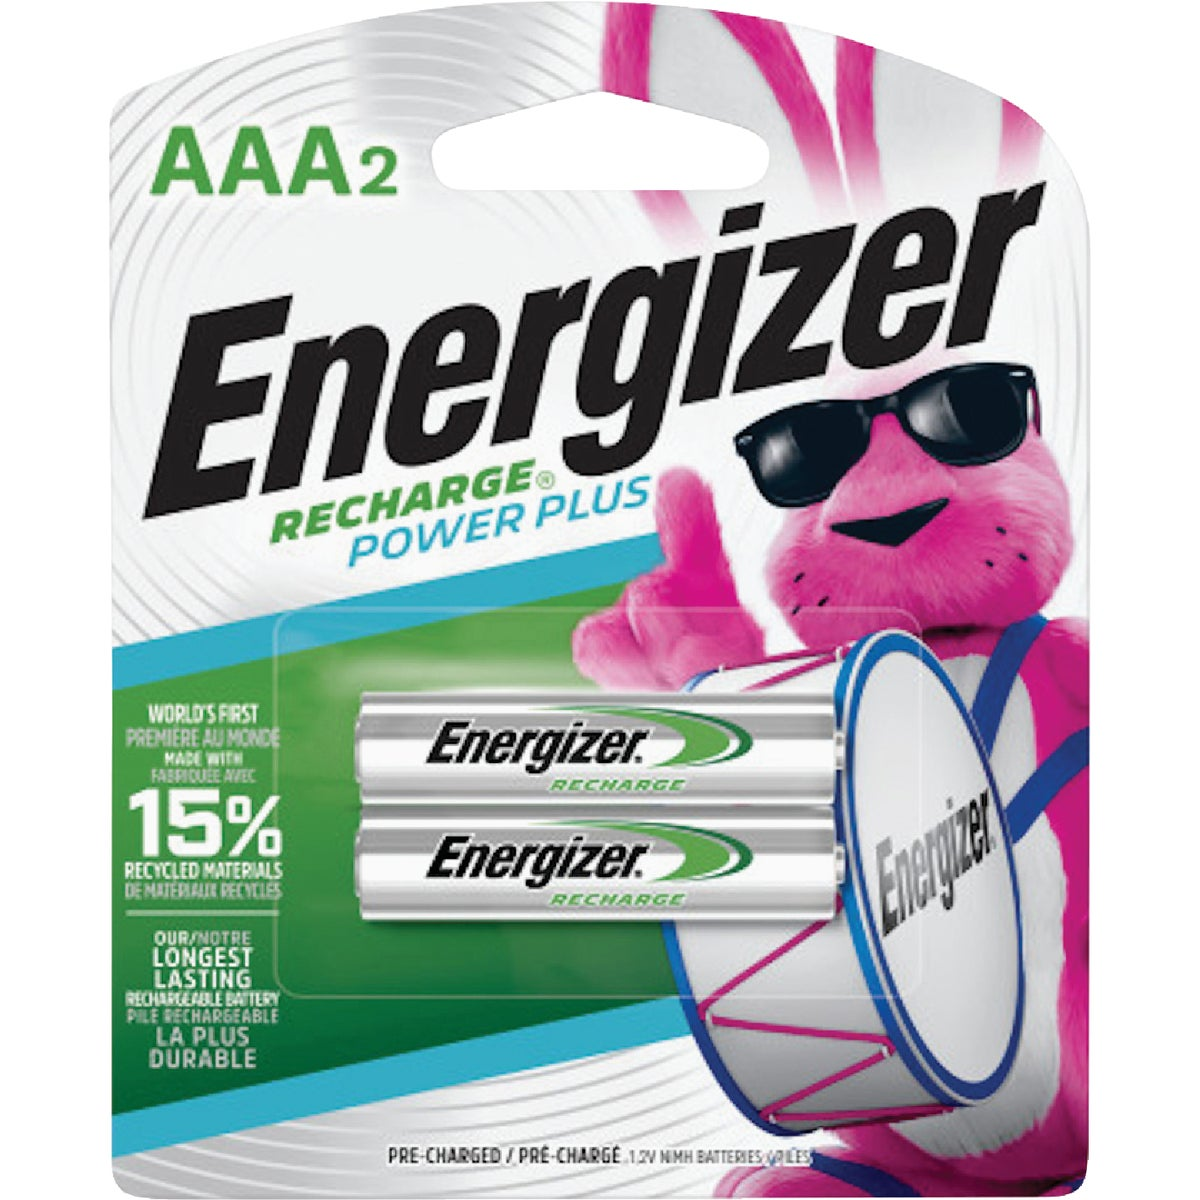 2CD AAA RECHARGE BATTERY